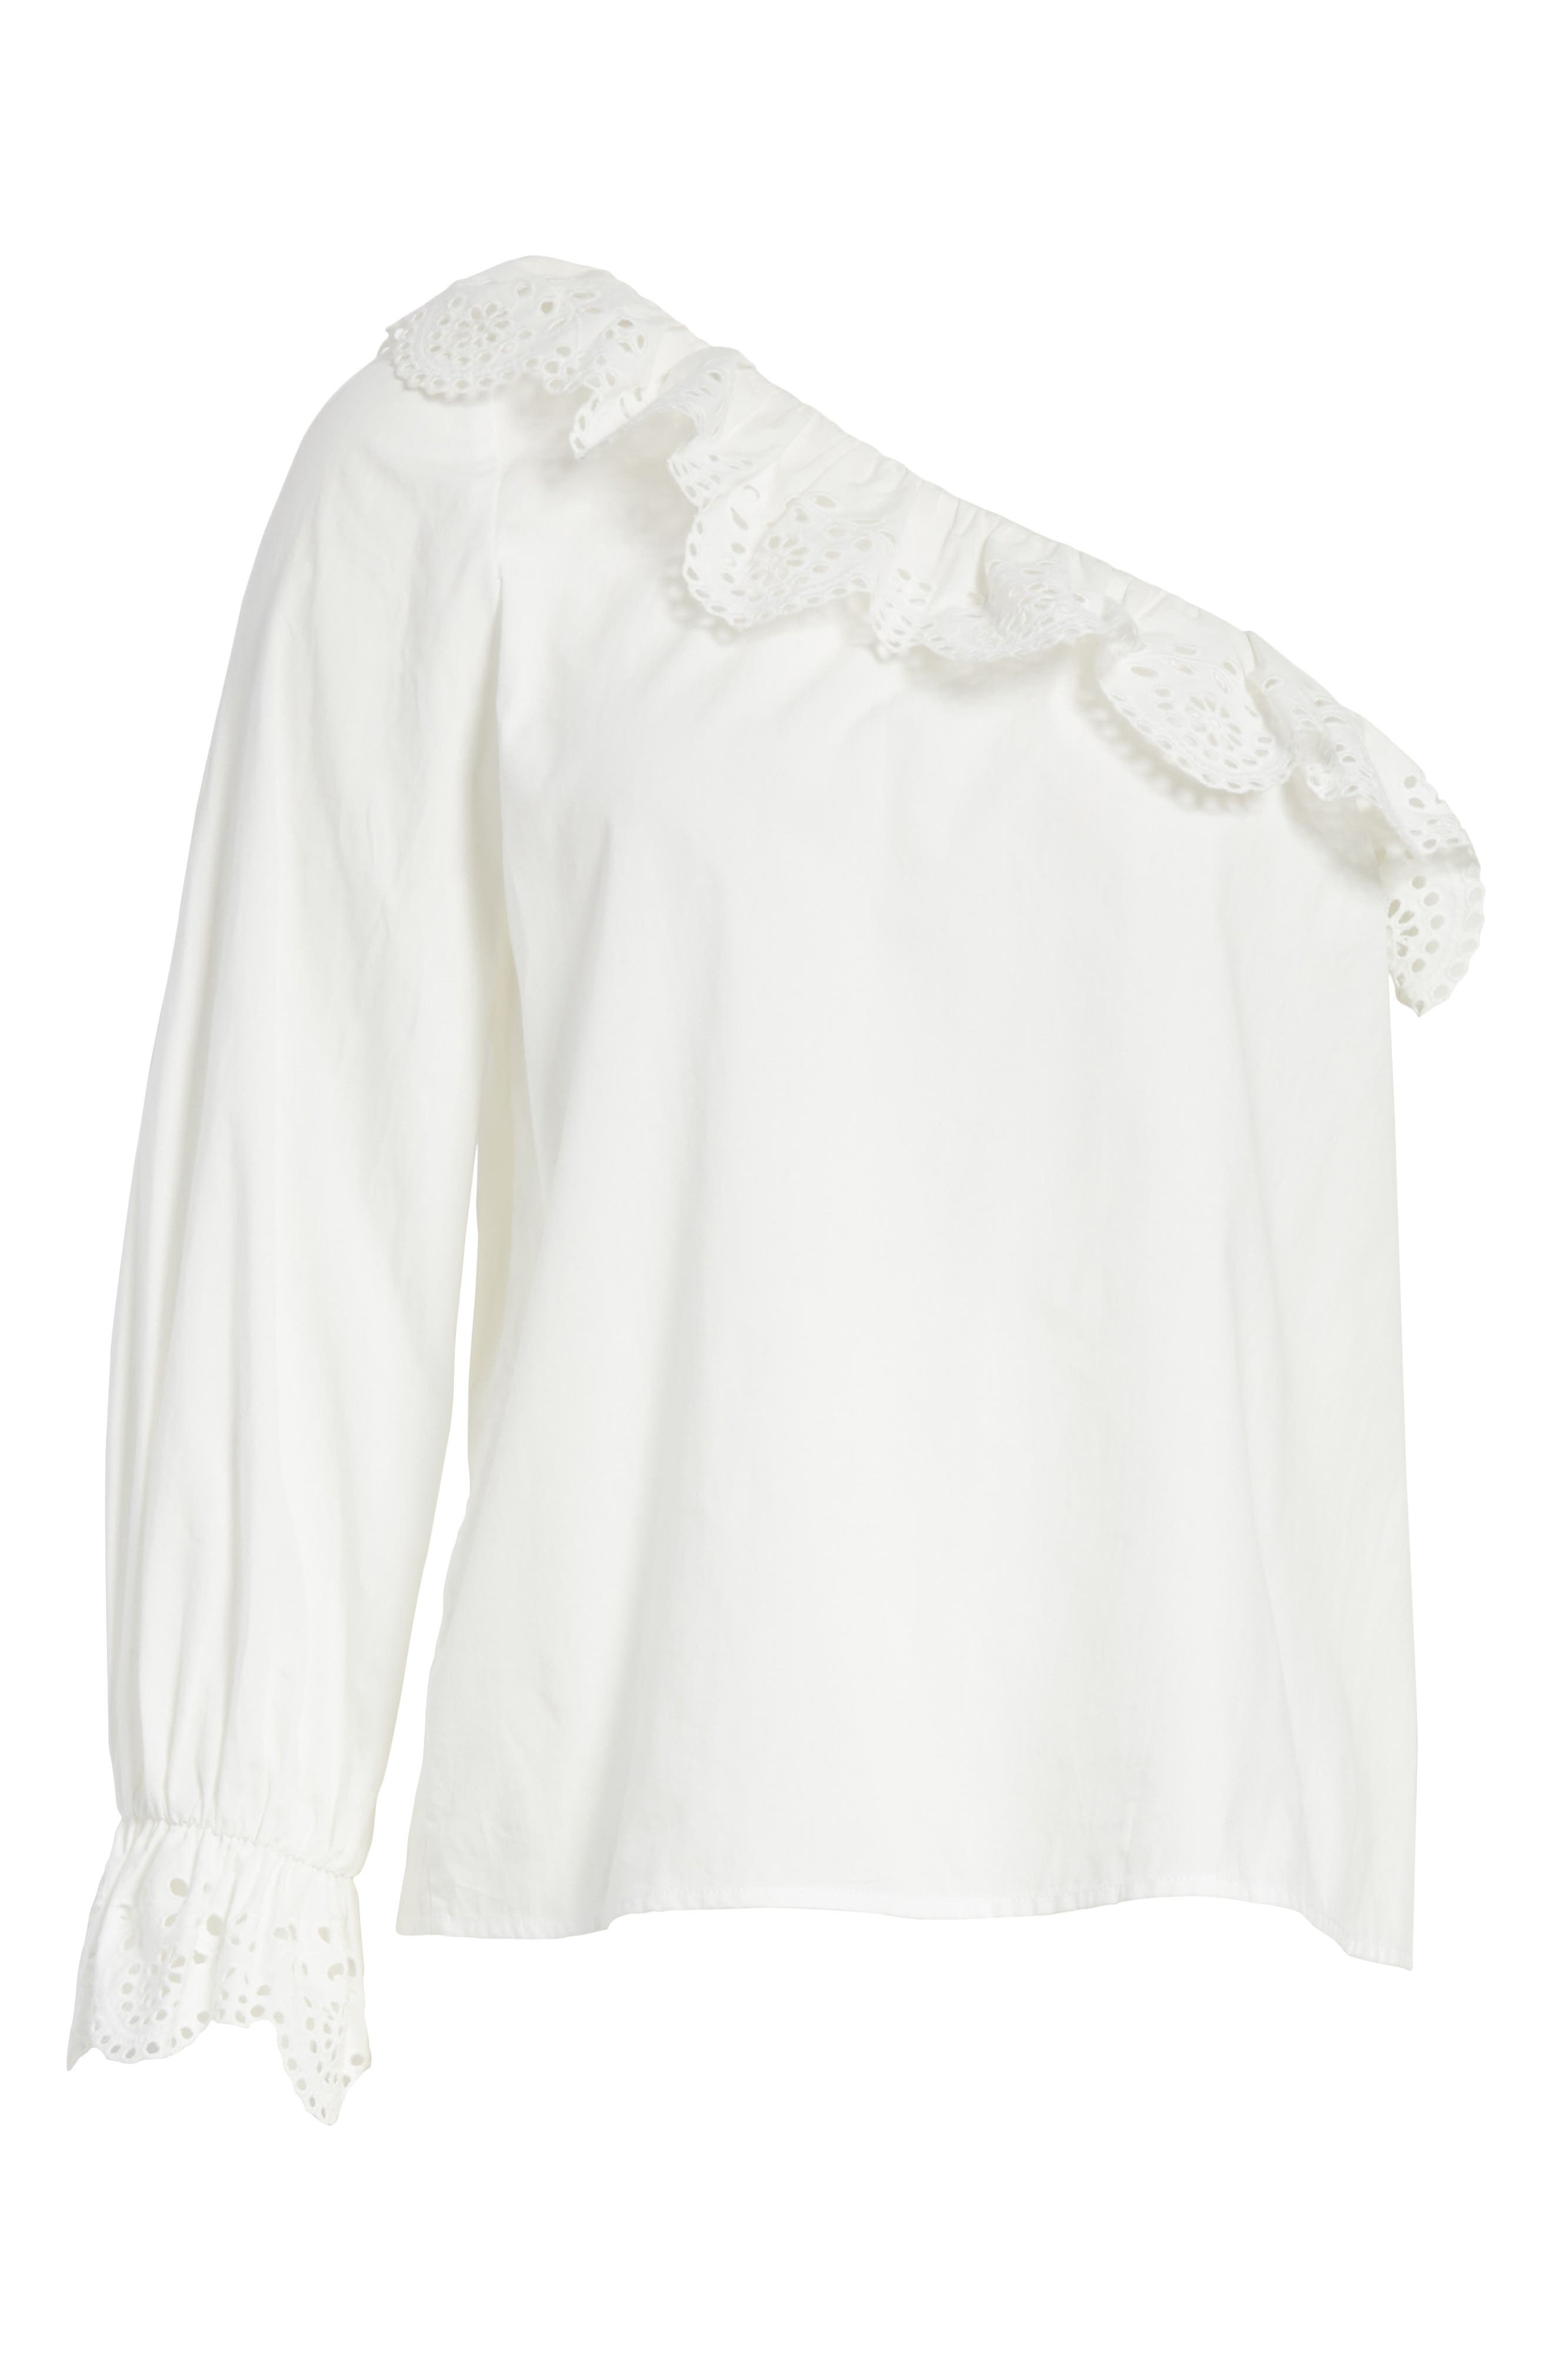 Arianthe One-Shoulder Eyelet Top,                             Alternate thumbnail 6, color,                             Clean White